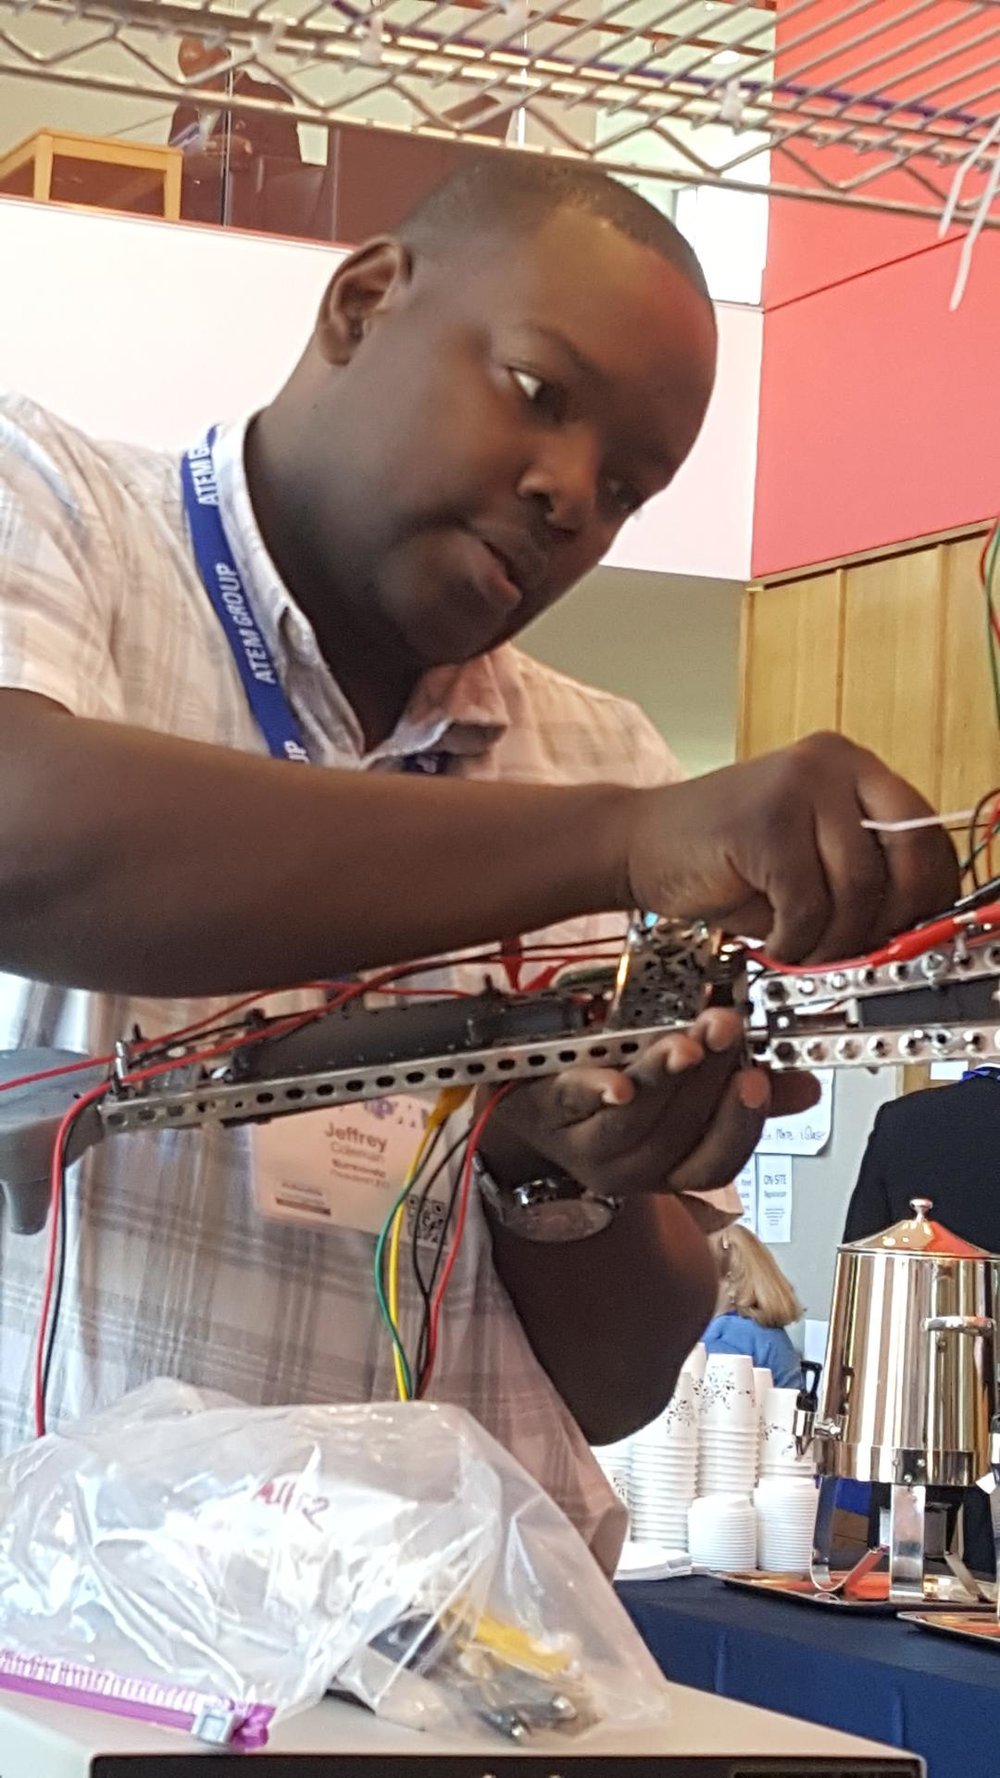 Putting In Work: Assembling Robot Demo at 2016 PMI Symposium